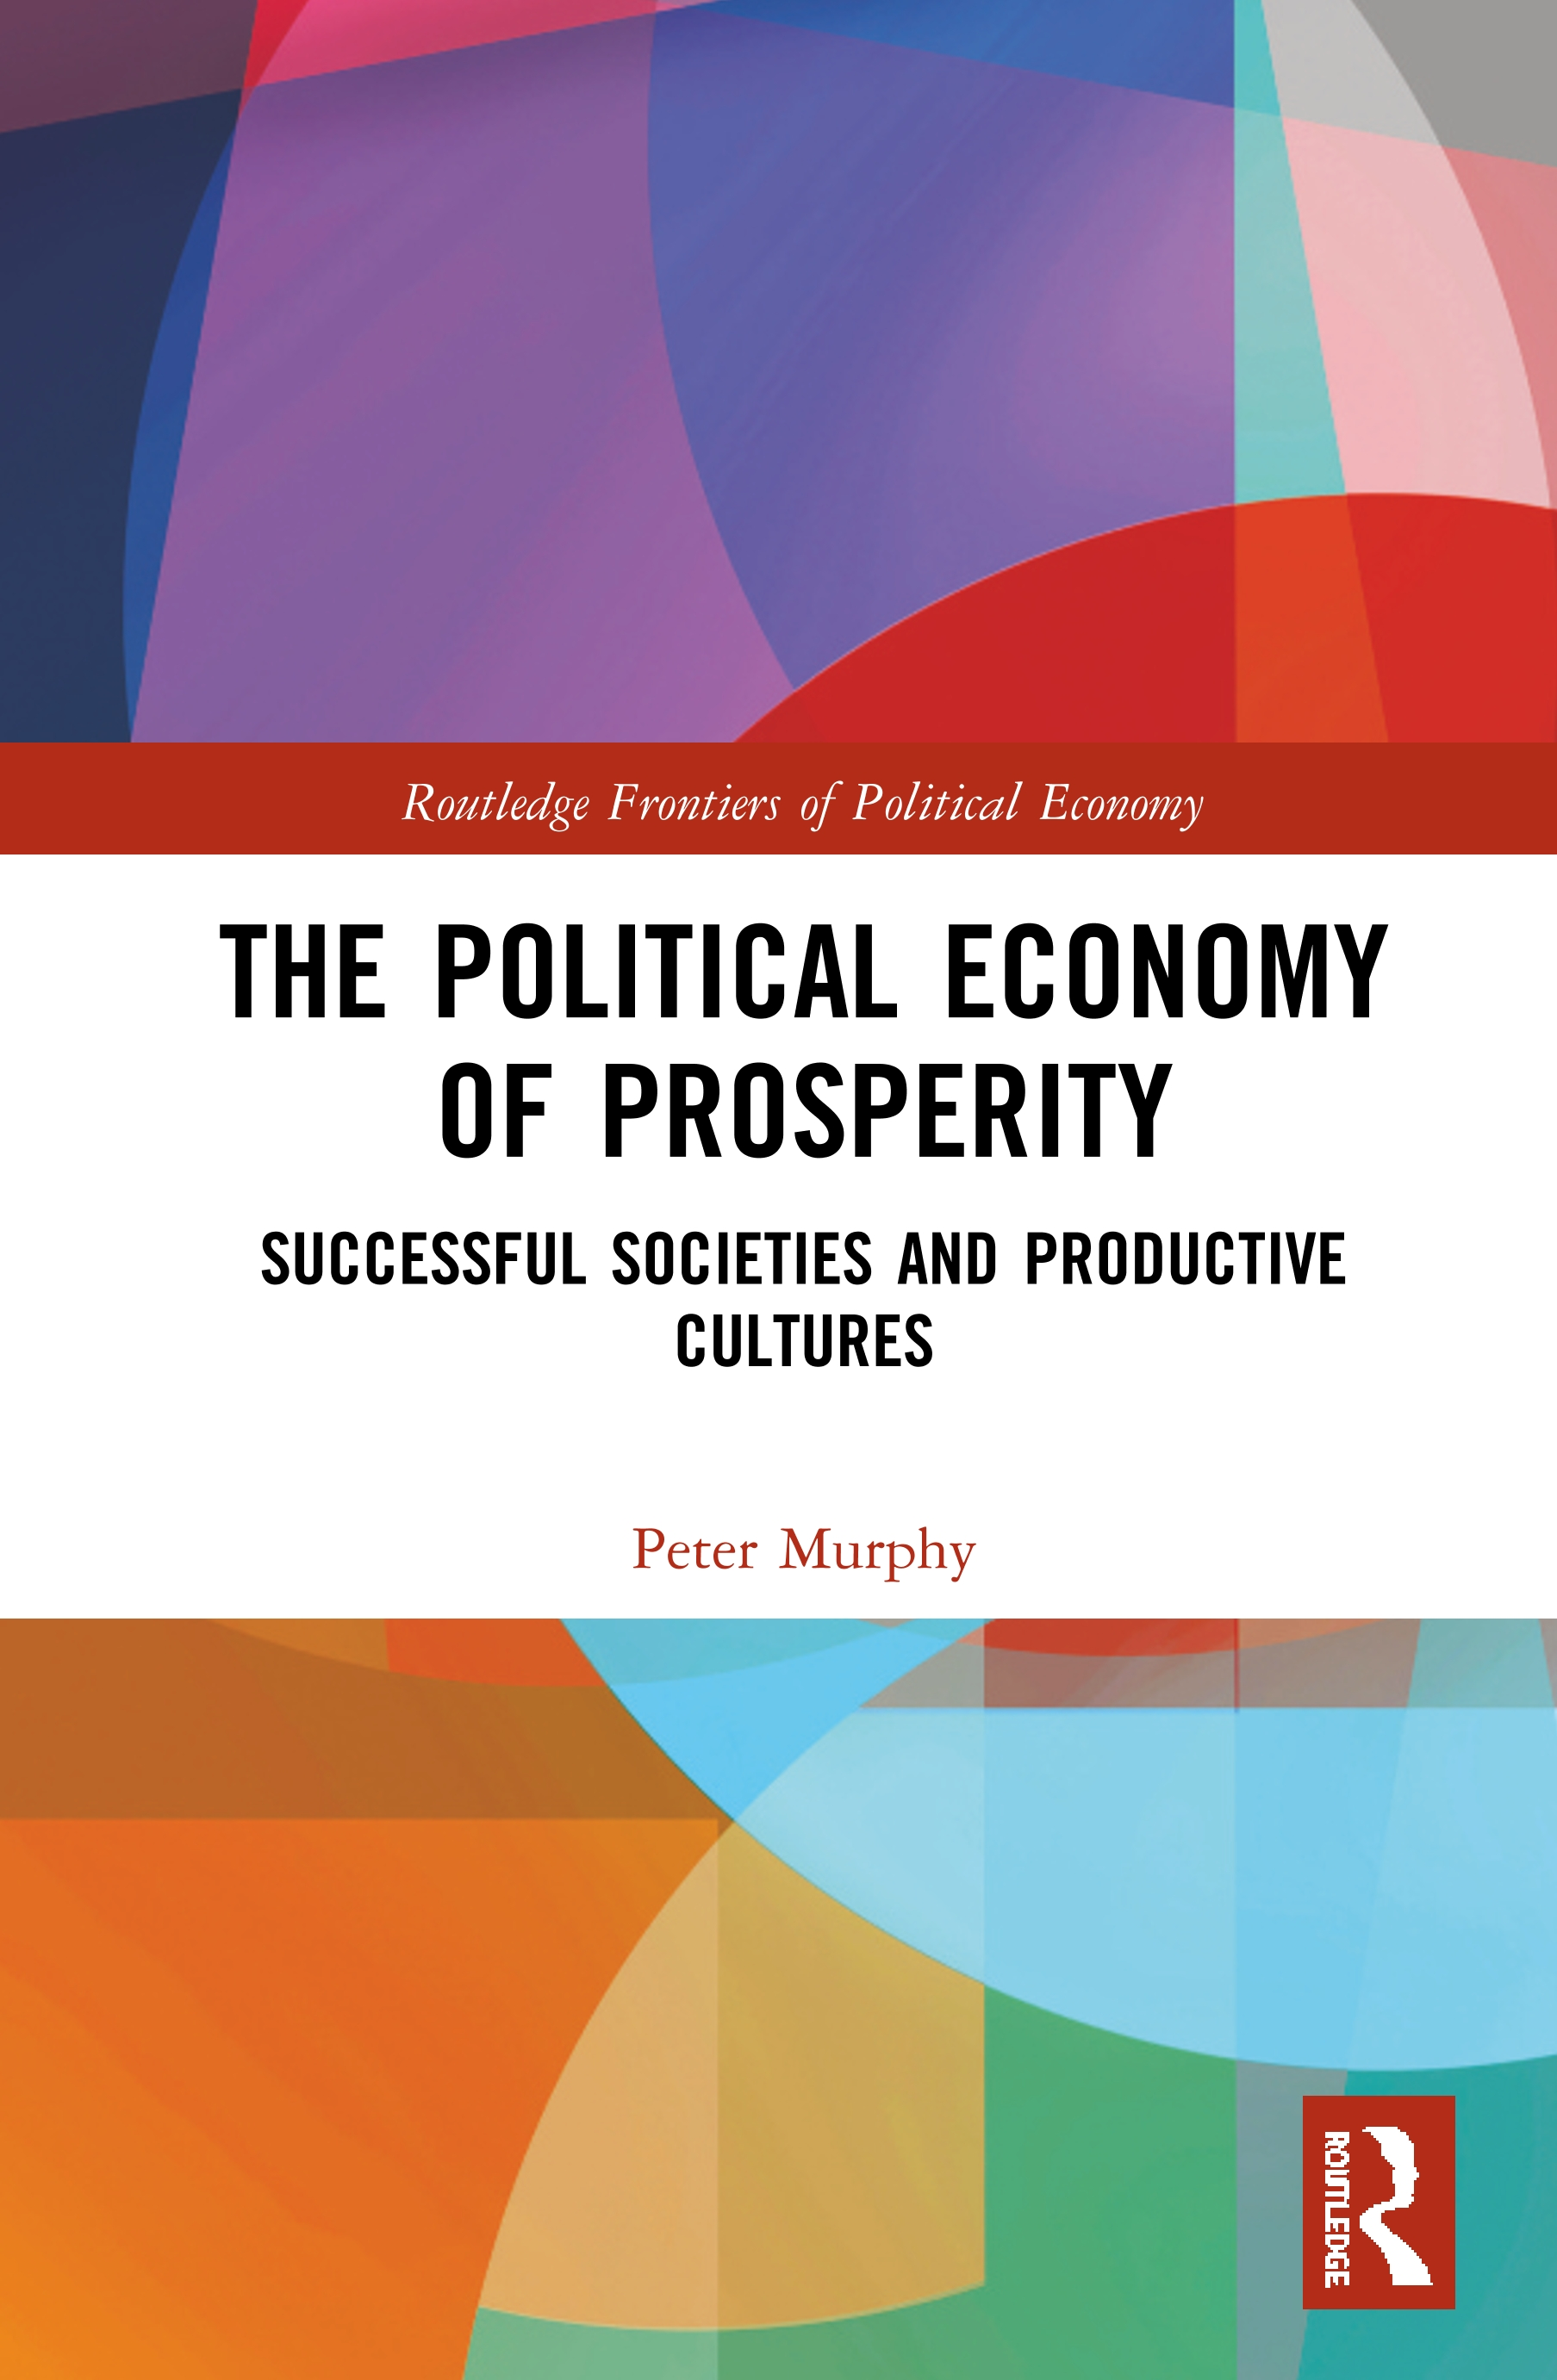 The Political Economy of Prosperity: Successful Societies and Productive Cultures book cover